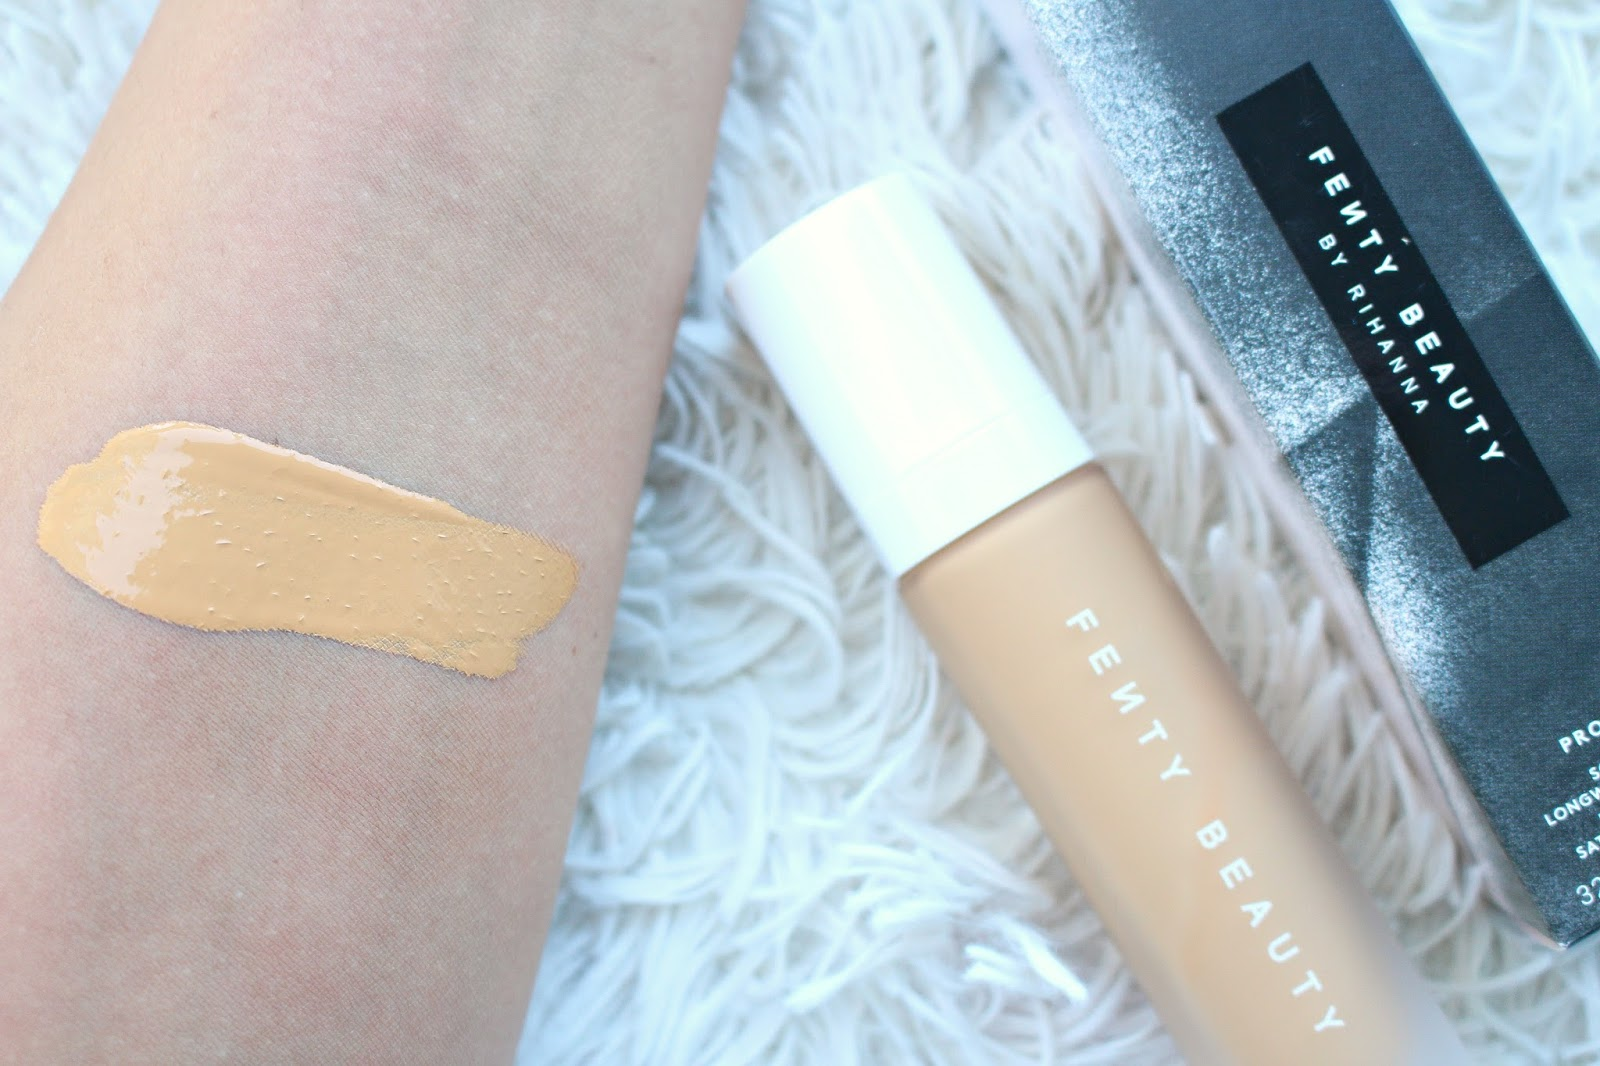 Fenty Beauty Foundation Shade Comparisons